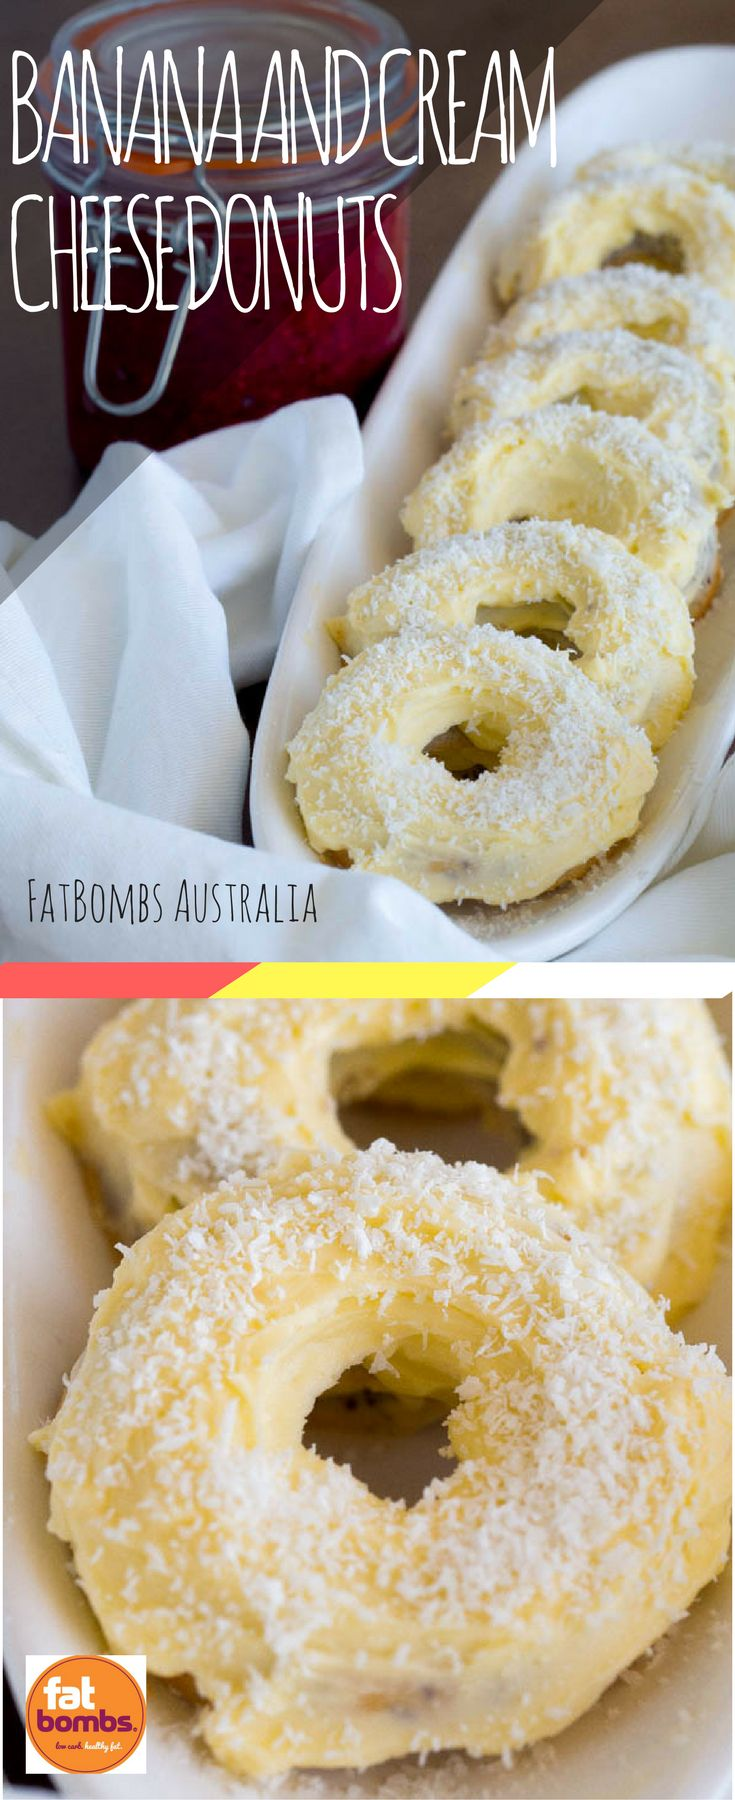 Being an Australian blogger, Its super awesome when you don't have to pay a lot of money in postage for a ketogenic treat. Fatbombs Australia have been running their keto snacks through their cafe over in Perth. This Fatbomb is a fantastic treat for Diabetics, low carb people or anyone trying to stick to the ketogenic diet. via @fatforweightlos